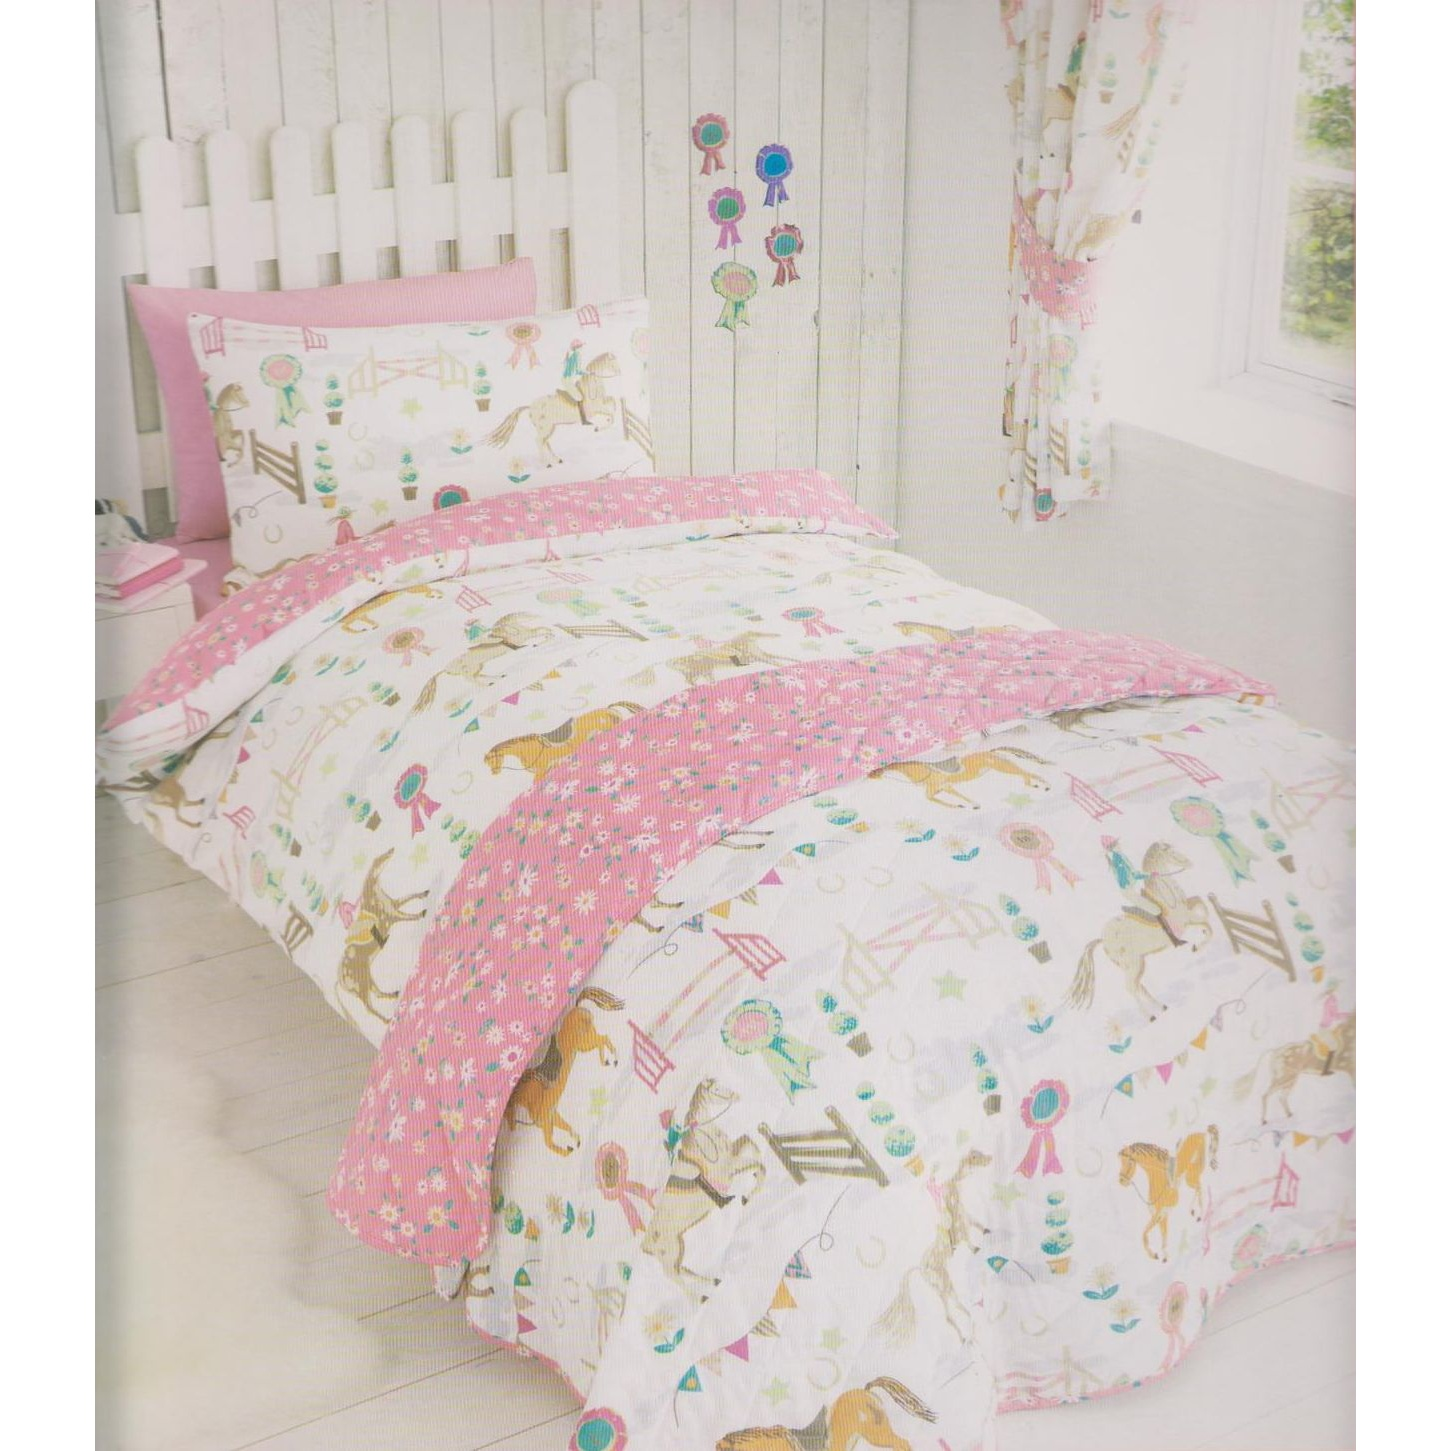 kids club girls horse show quilt cover bedding set twin full ebay. Black Bedroom Furniture Sets. Home Design Ideas